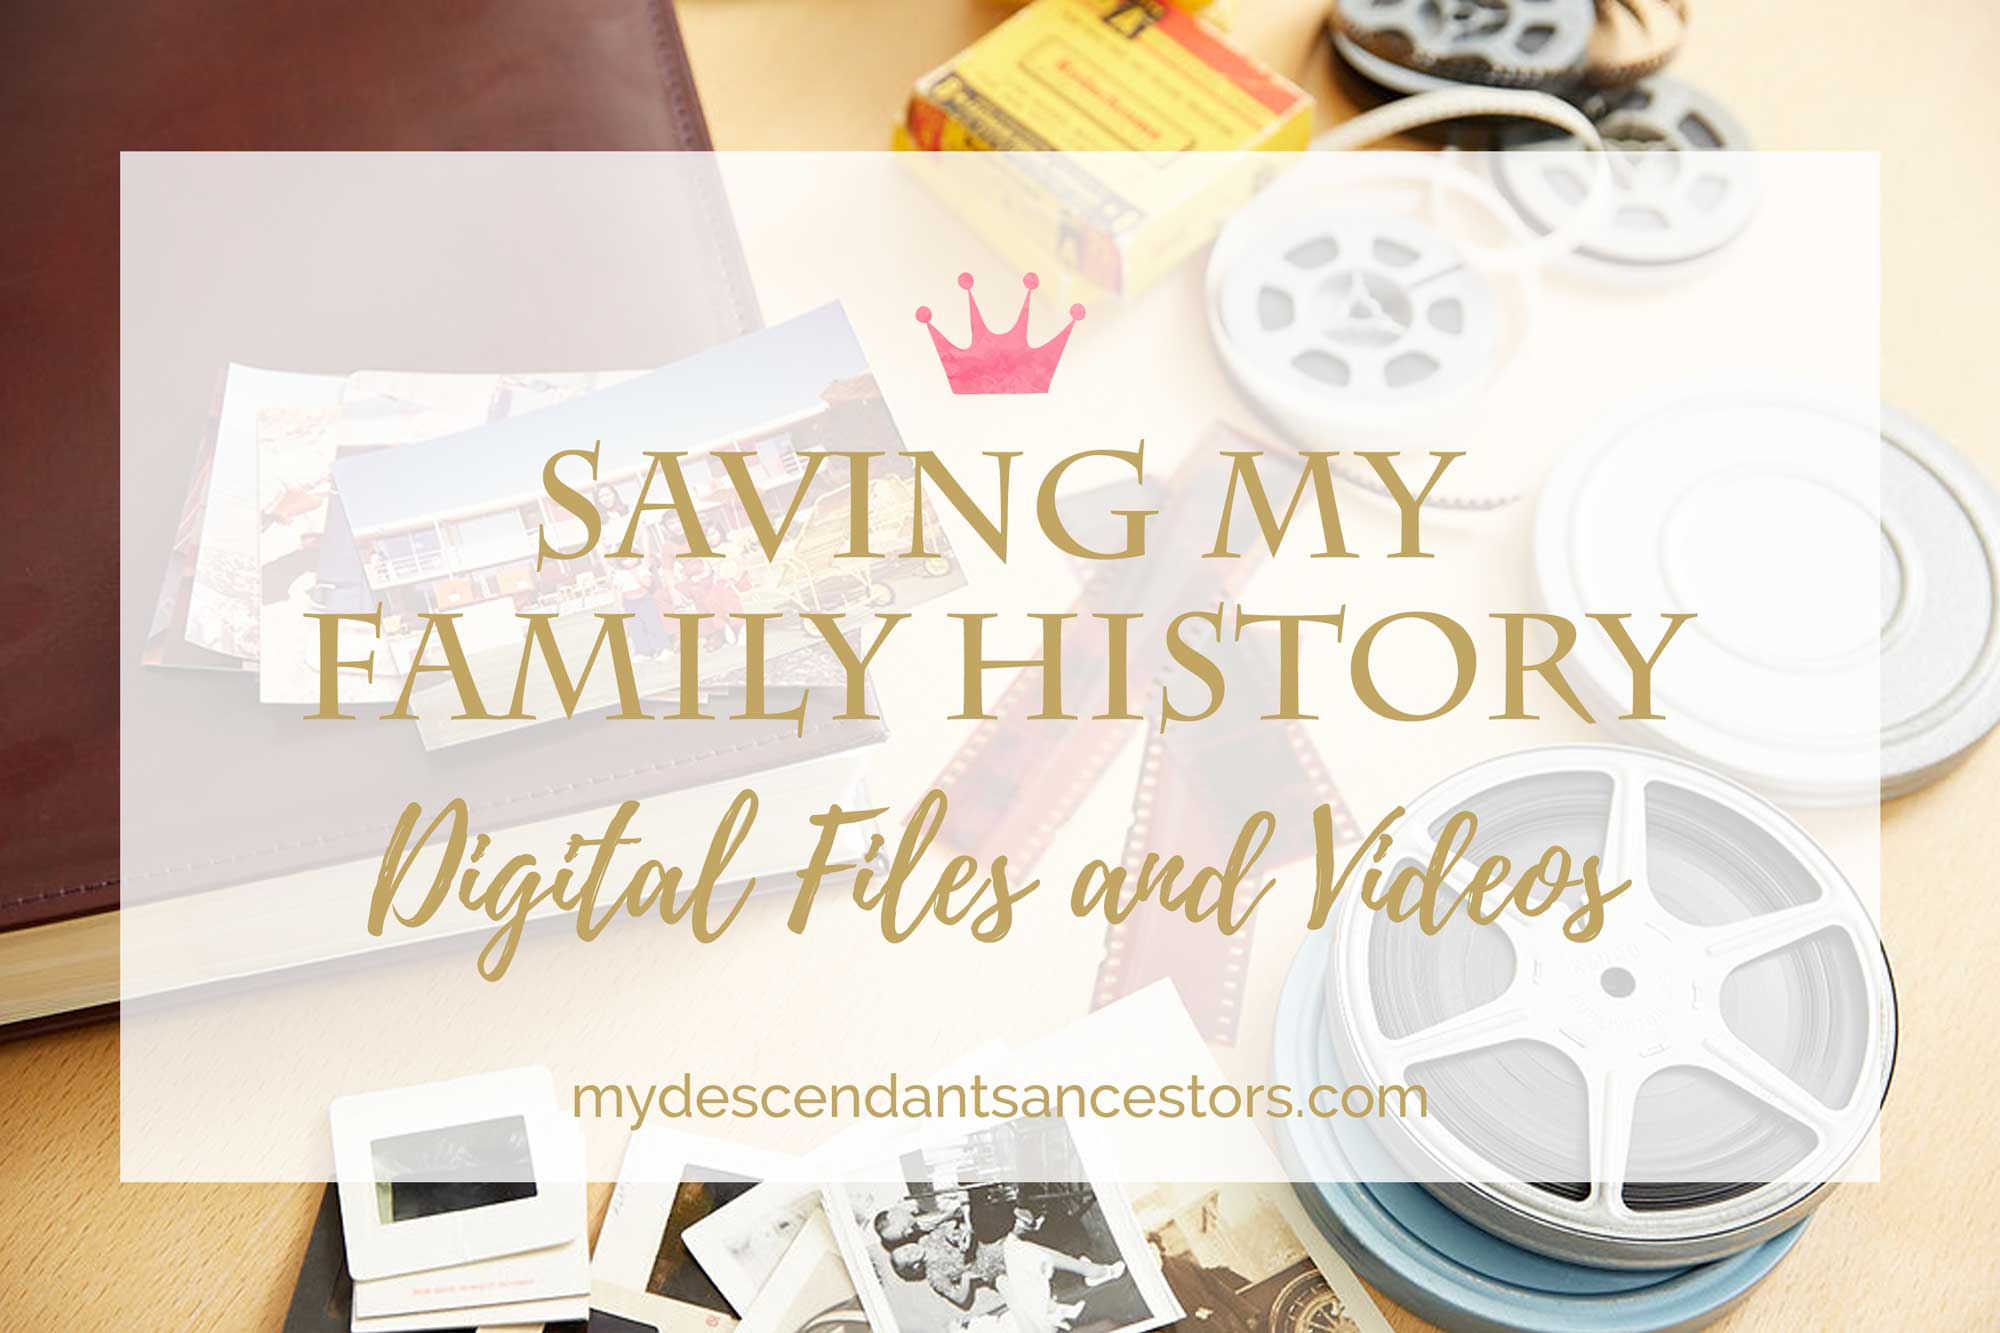 Saving my Family History: Digital Files and Videos